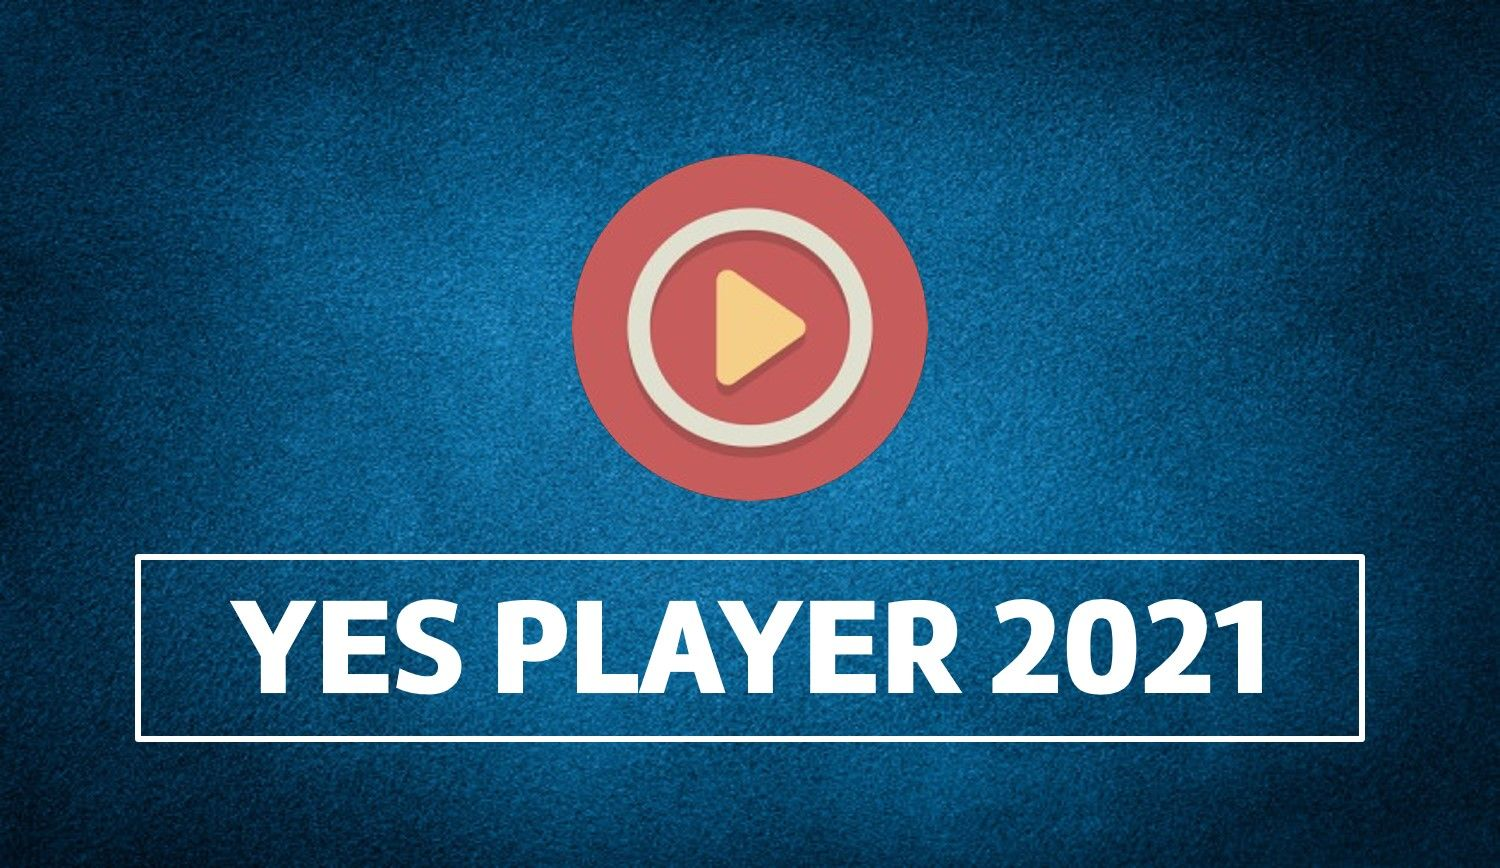 Pin On Yes Player 2021